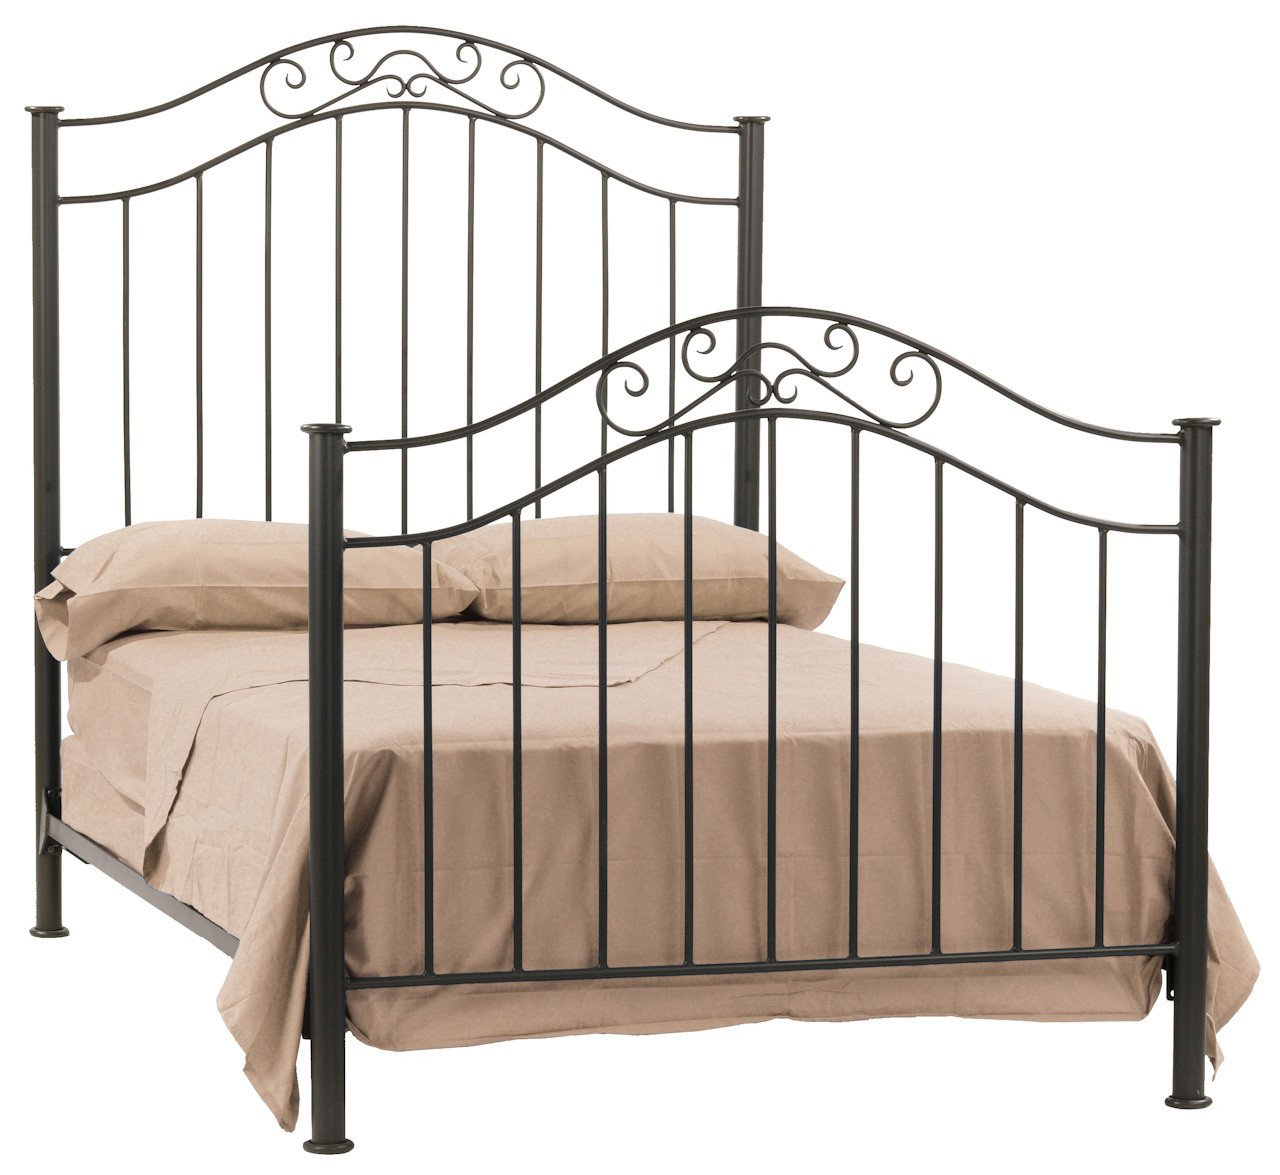 King Bed Richmond 260 Product Photo